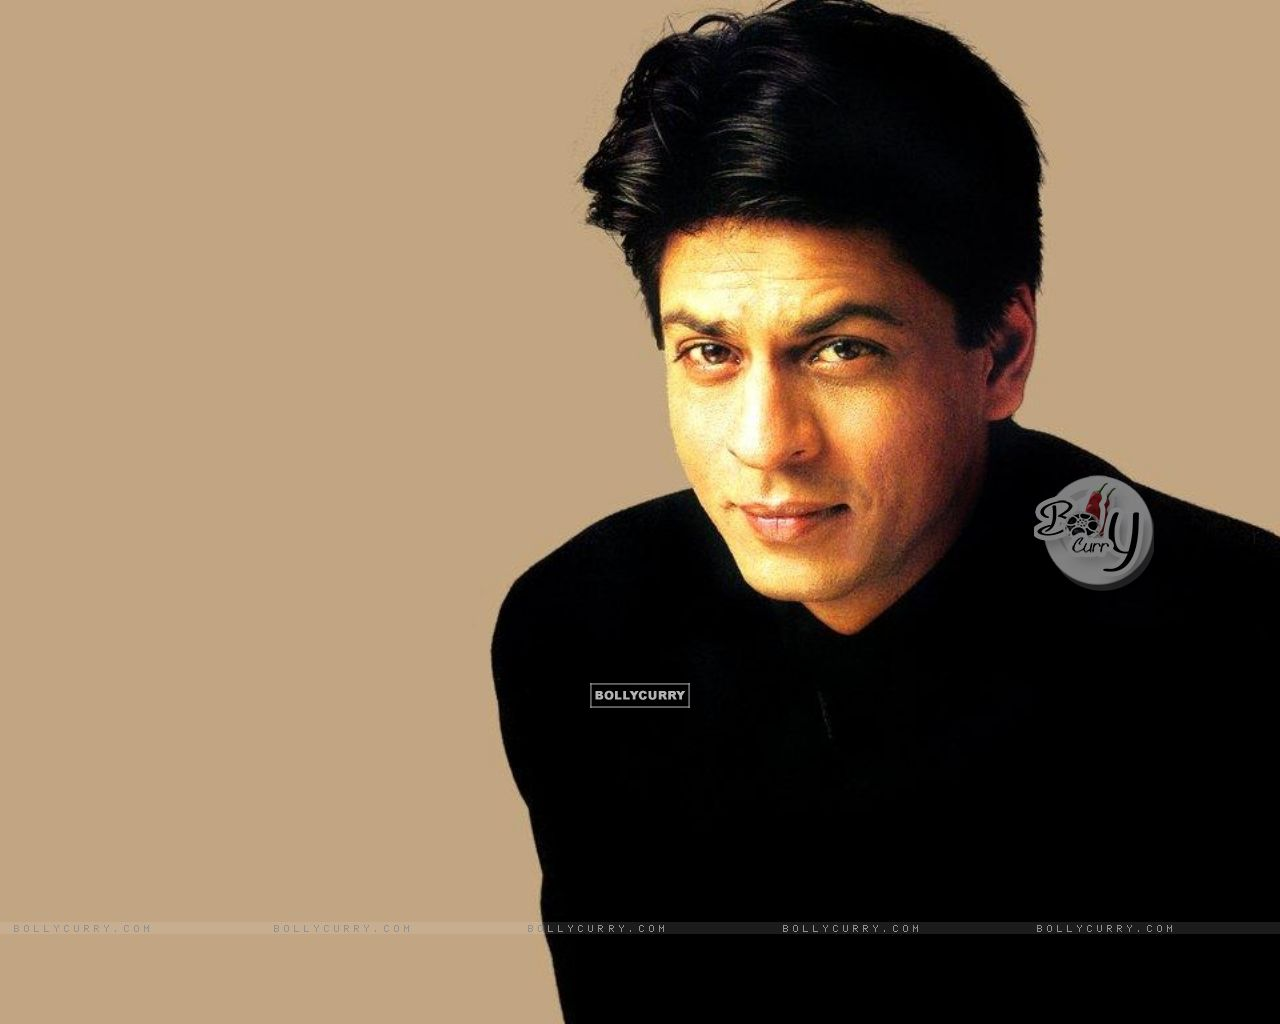 Shah Rukh Khan - Images Colection